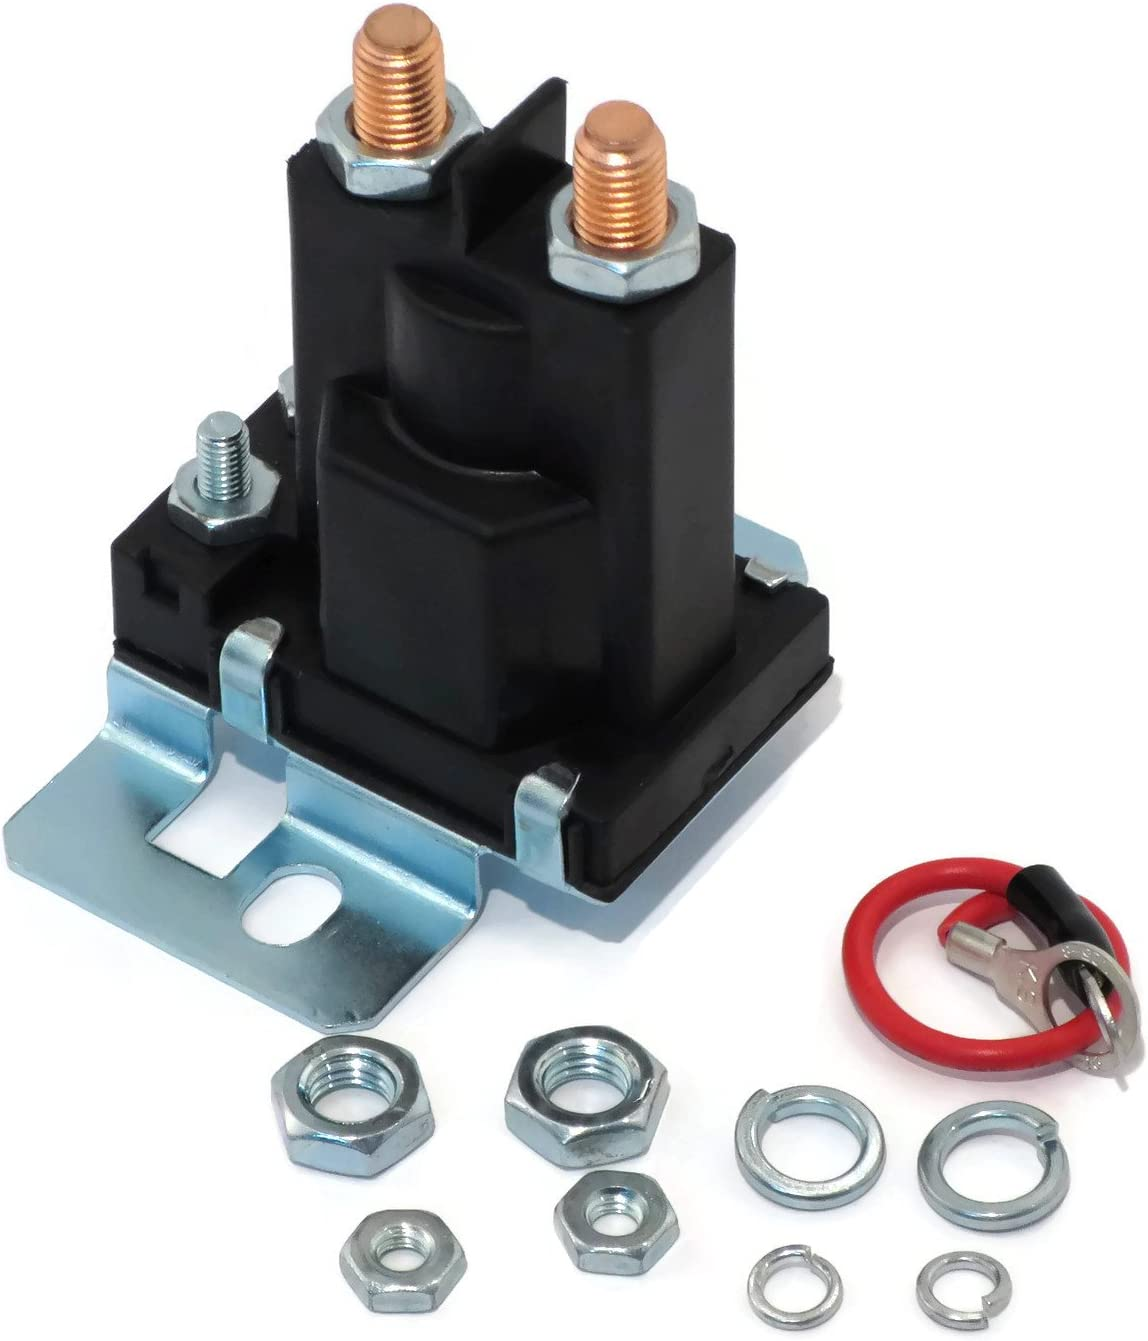 New Relay Solenoid Large discharge sale for Western Fisher Meyers Post Snowplows 4 sold out w